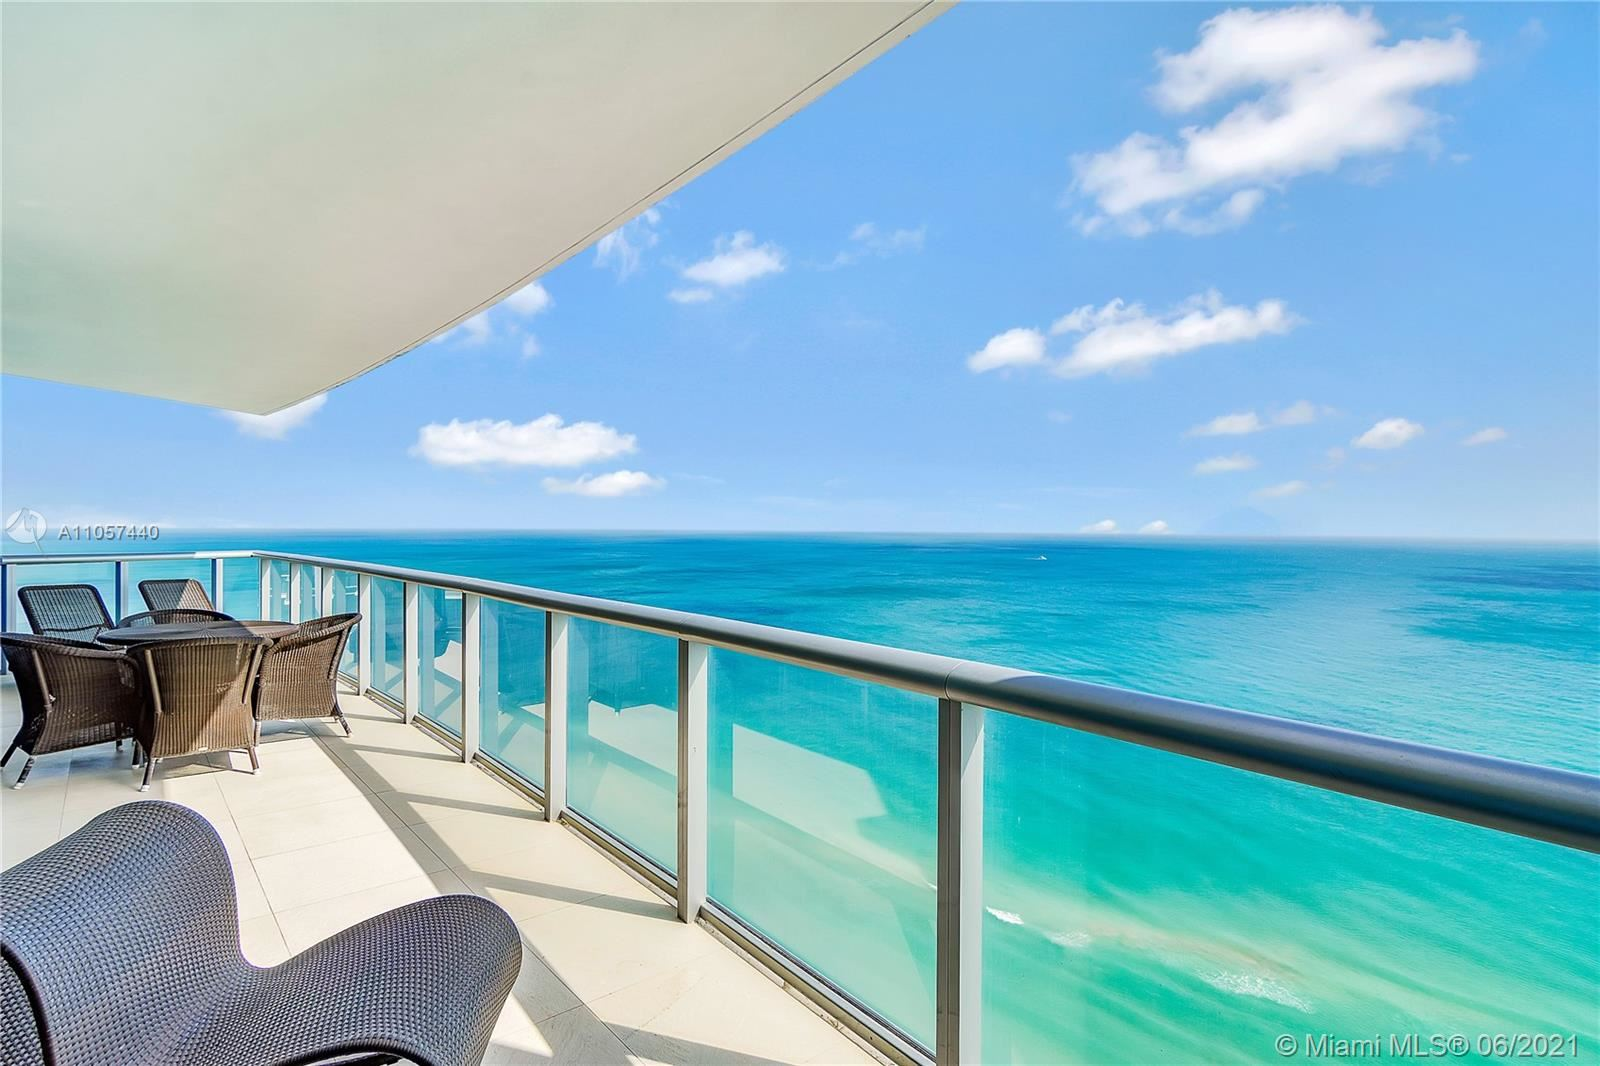 17001 Collins Ave #3607, Sunny Isles, FL 33160 - #: A11057440